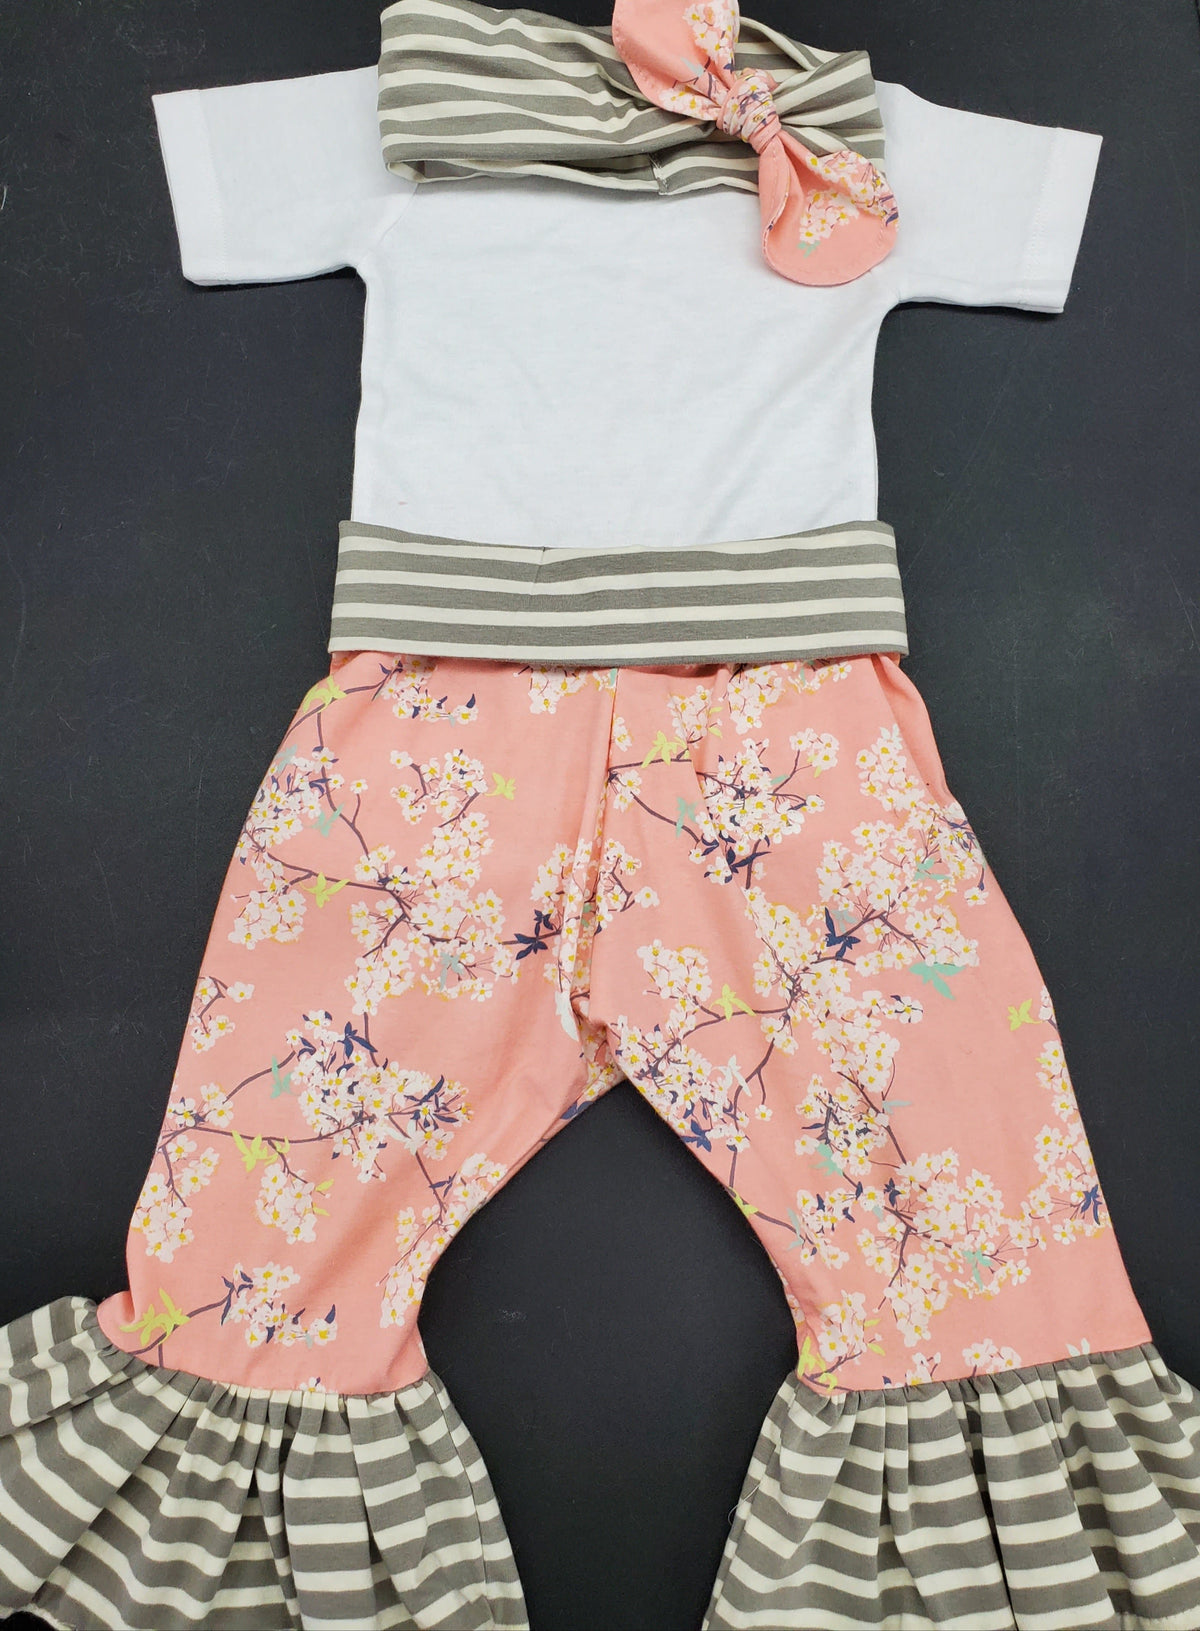 Baby/Toddler Outfit - 3pc Ruffle Pants Set - Cherry Blossom